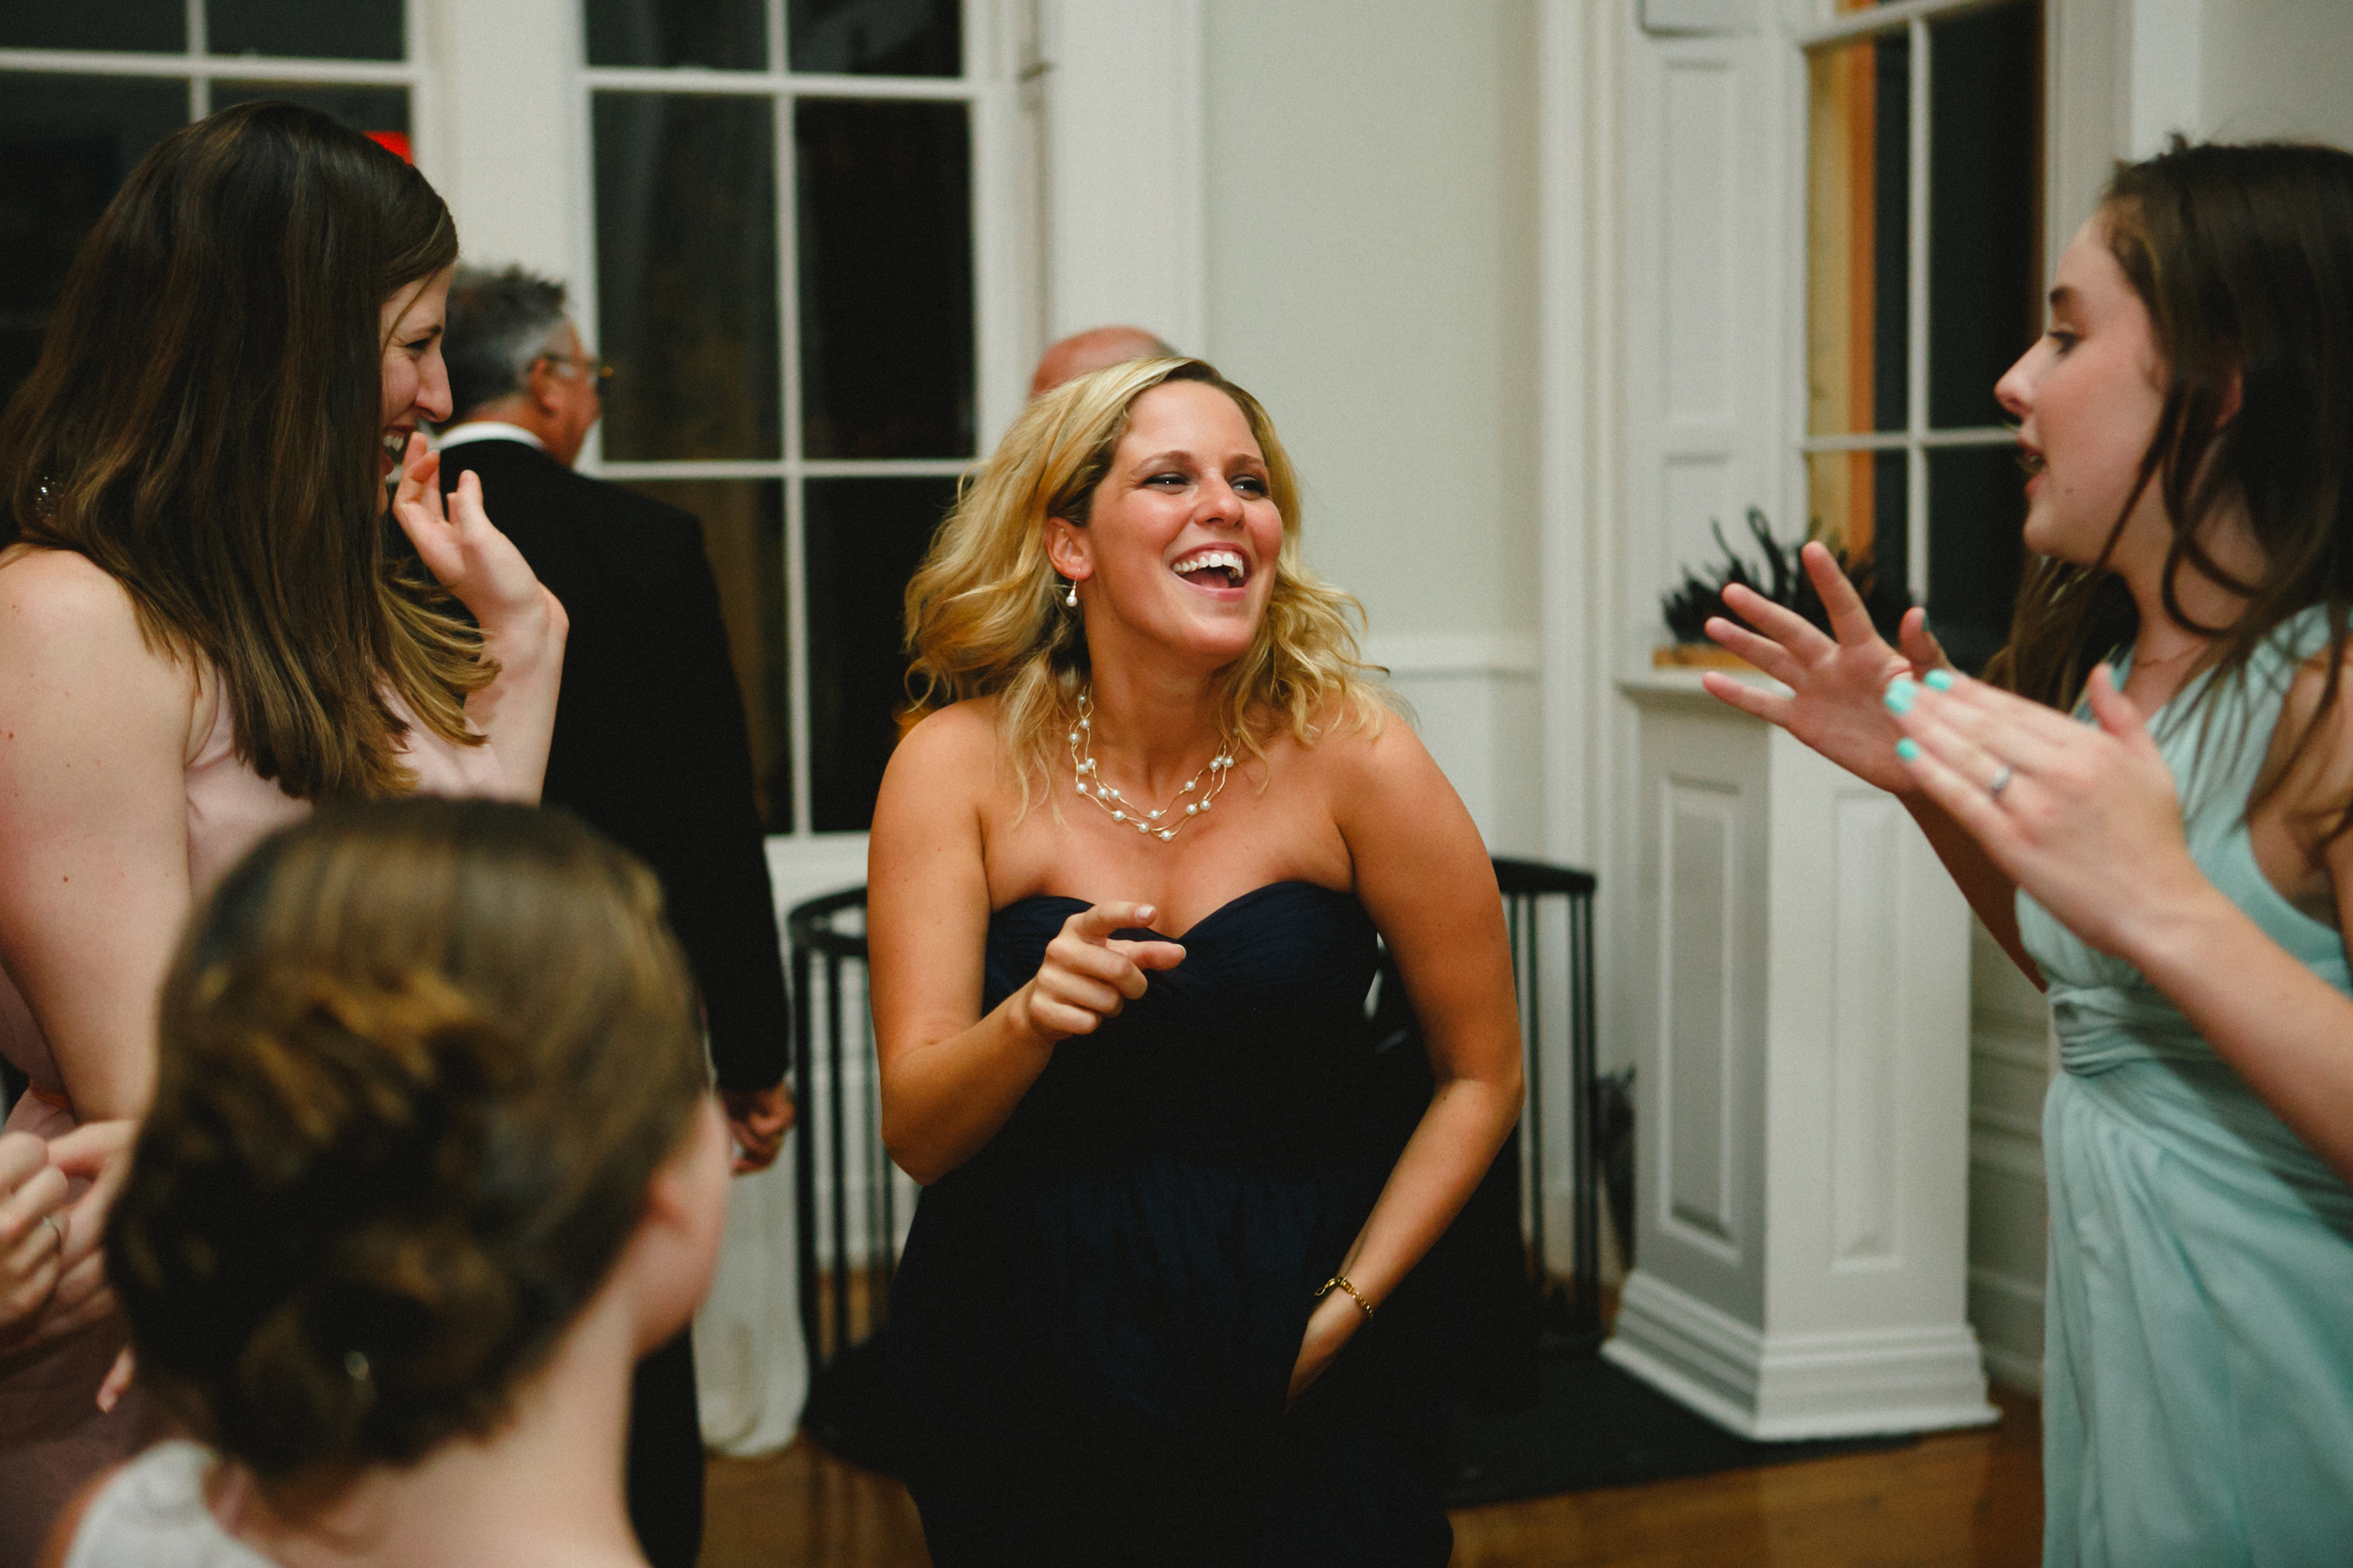 Vness_Photography_Wedding_Photographer_Washington-DC_Fish_Wedding-1126.jpg